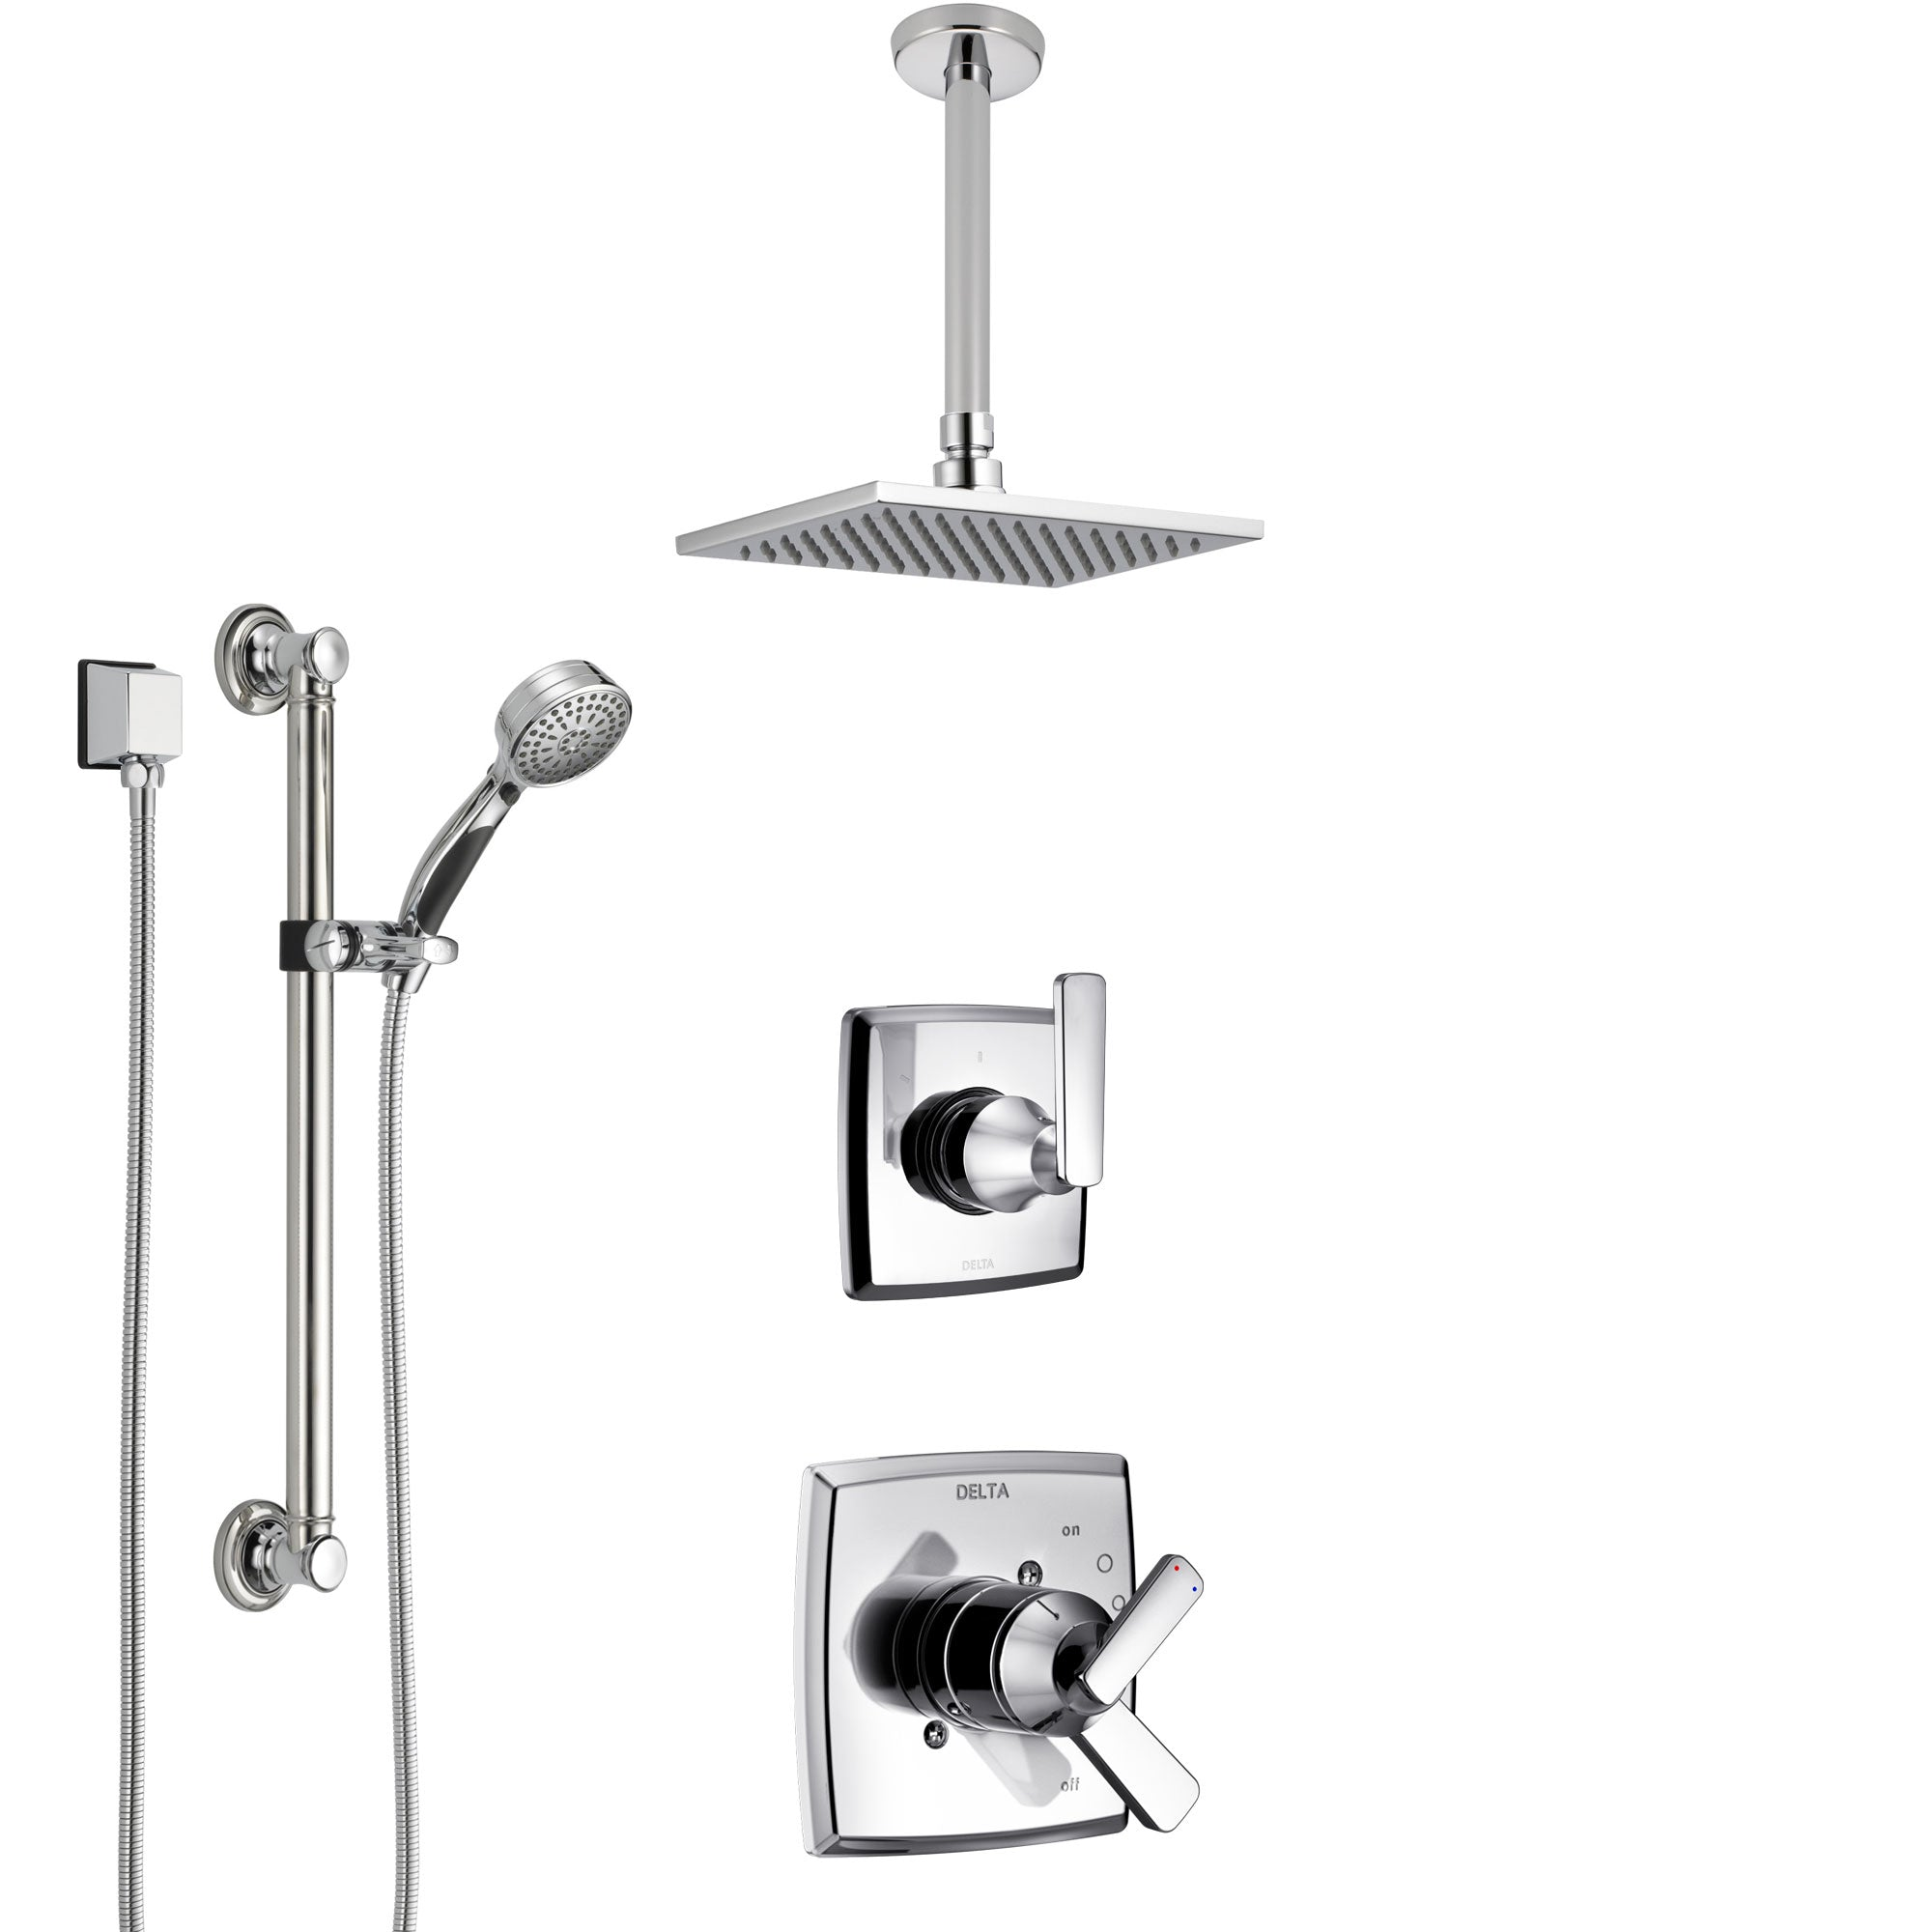 Delta Ashlyn Chrome Finish Shower System with Dual Control Handle, 3-Setting Diverter, Ceiling Mount Showerhead, and Hand Shower with Grab Bar SS17641